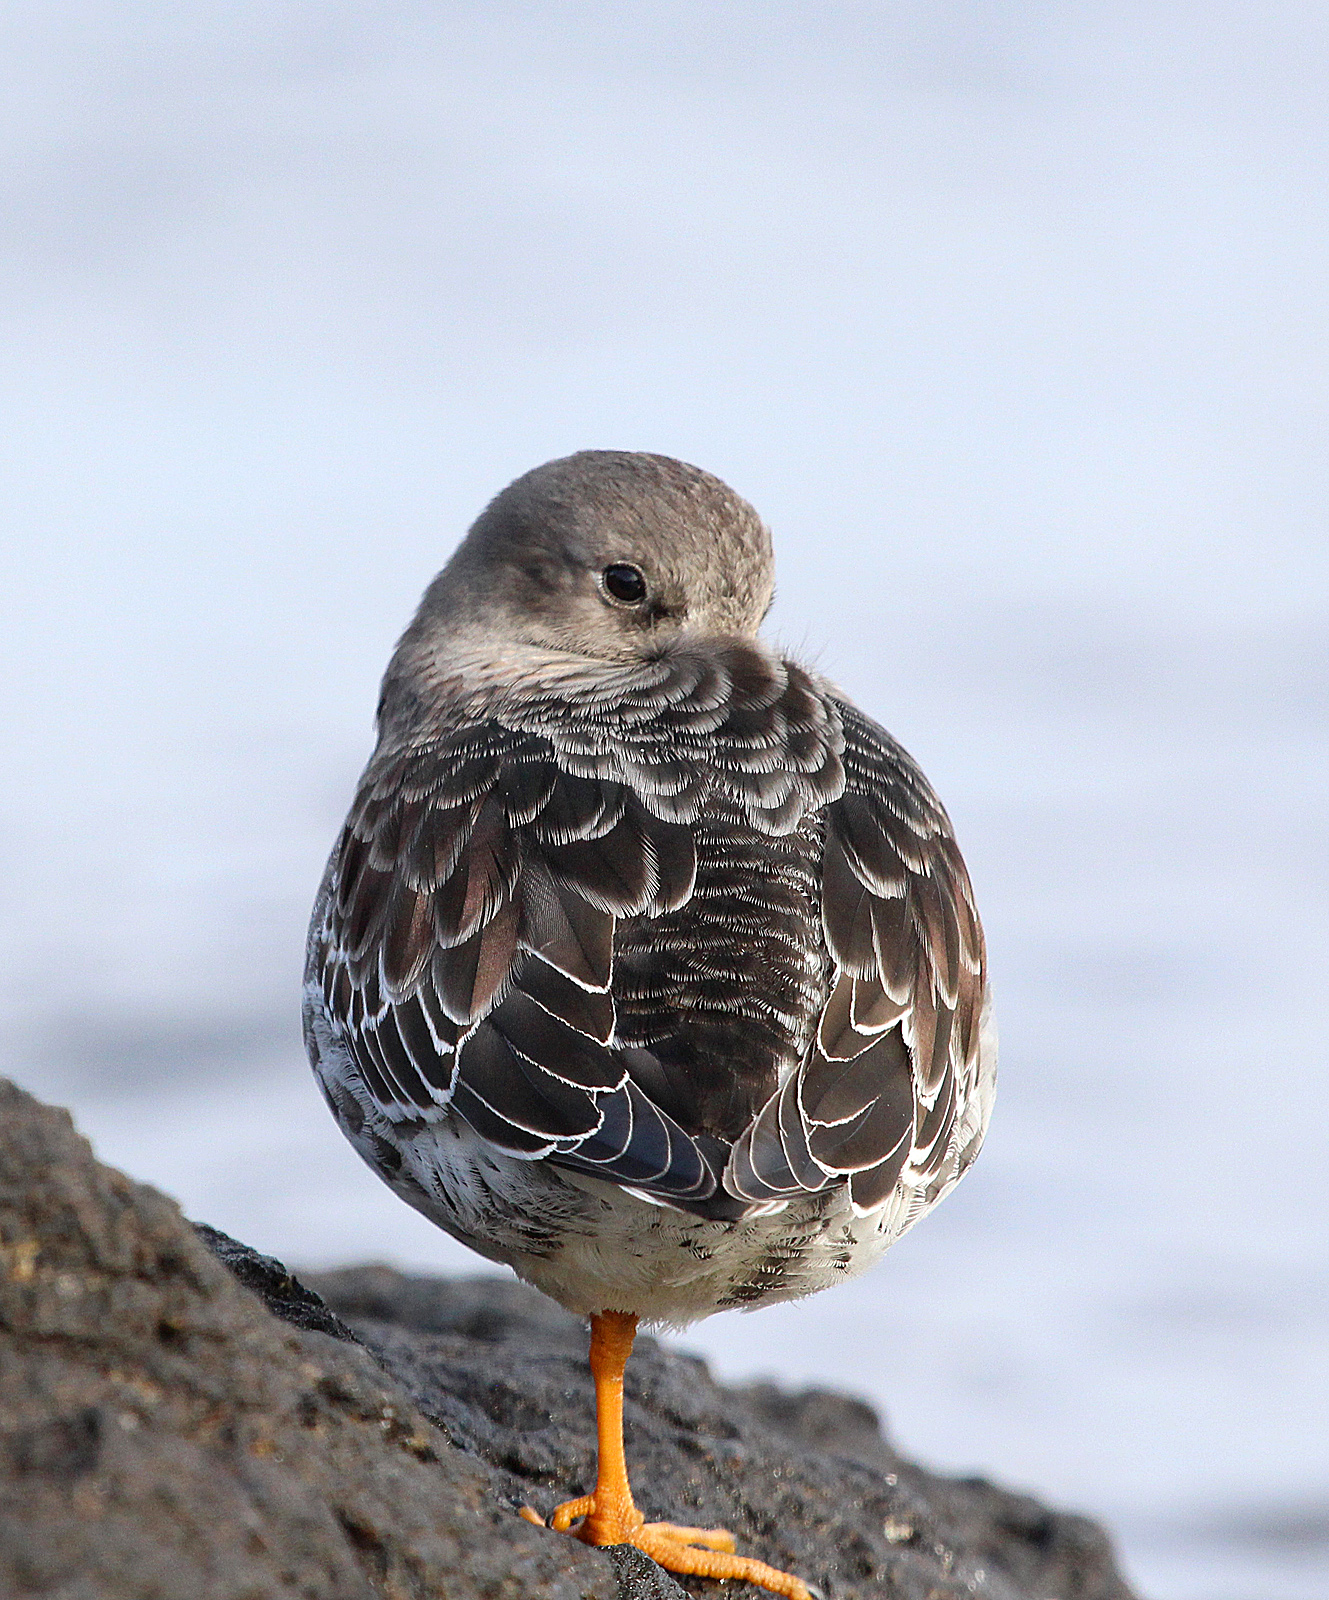 Photo by Chris Bosak Purple Sandpiper on rocky island off the coast of Darien, CT. (Dec. 2013)